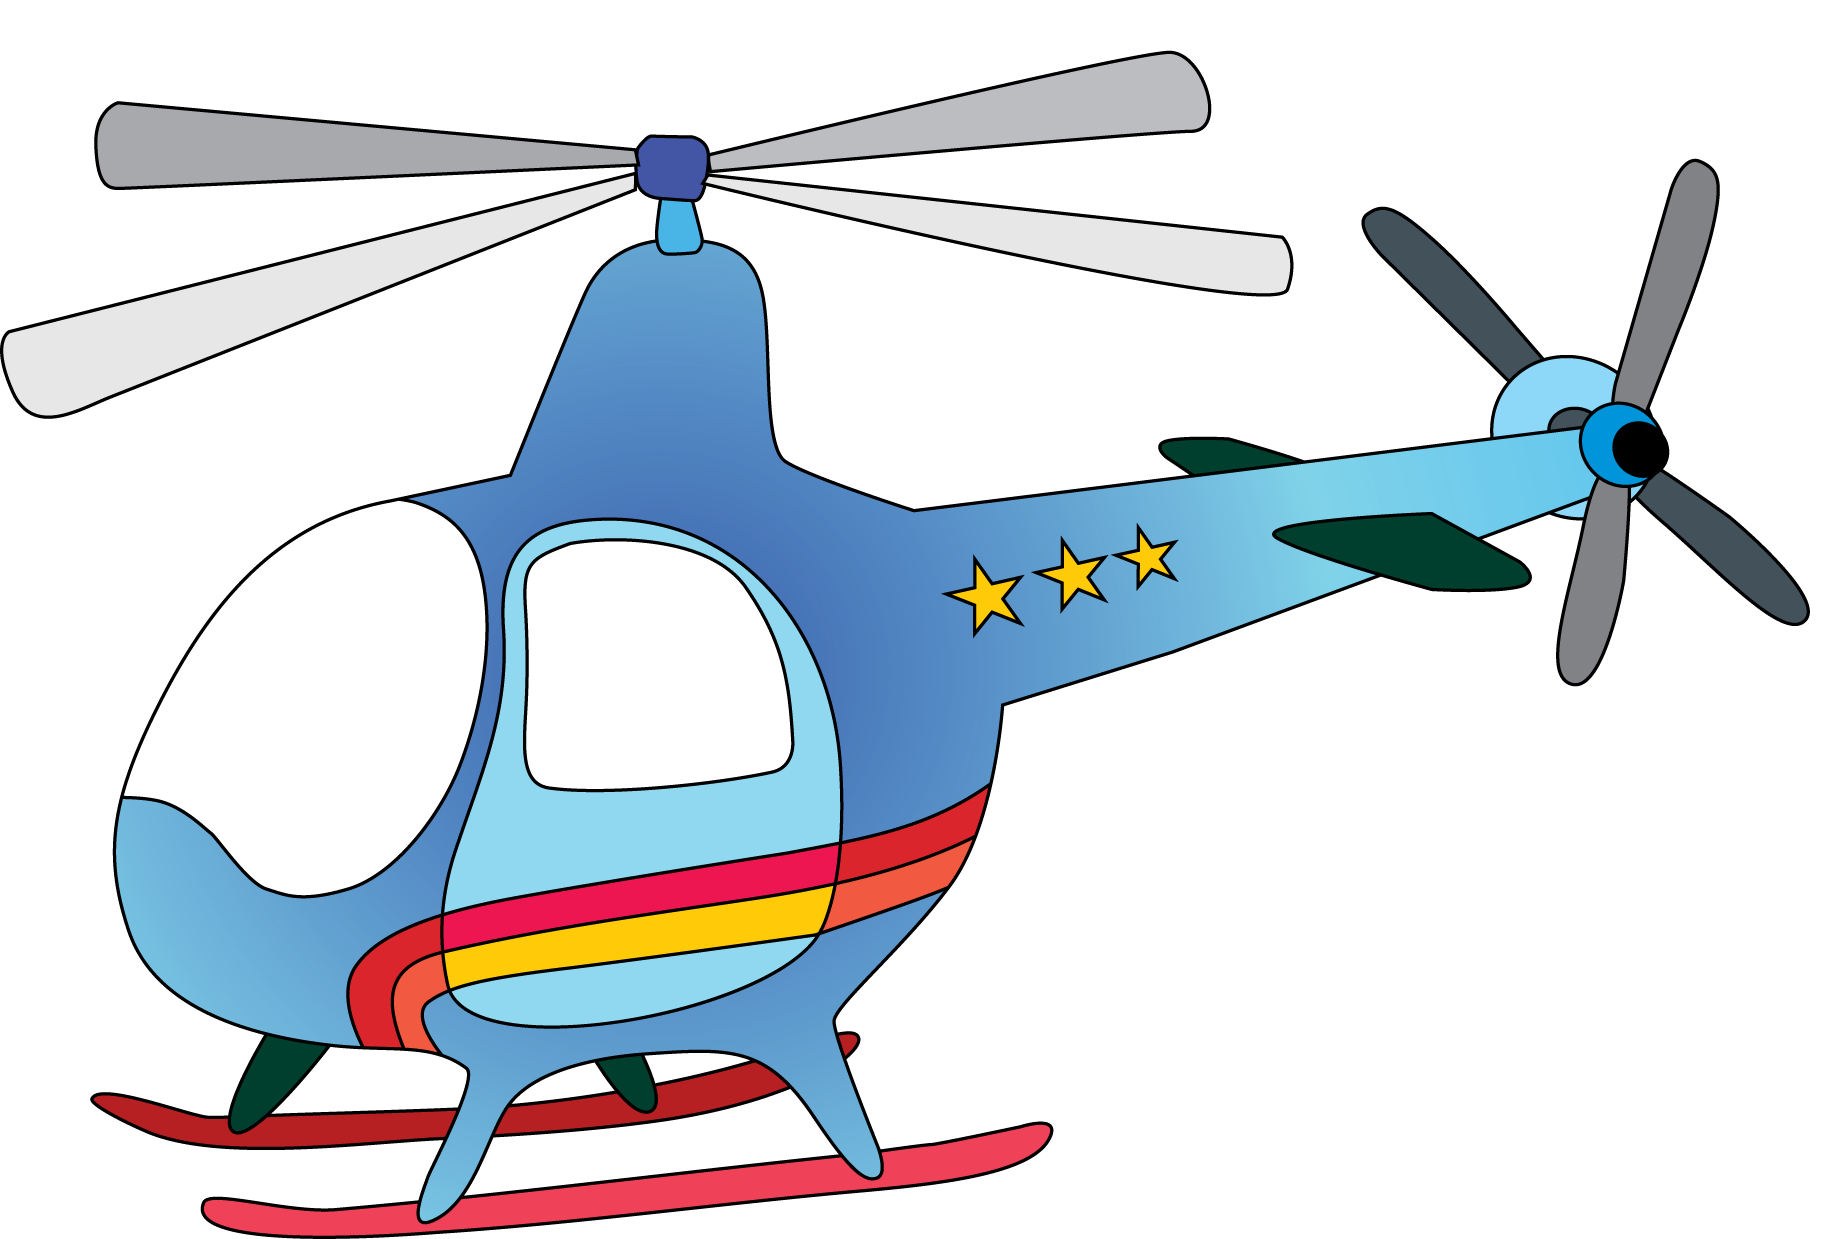 Letters format cliparts and. Helicopter clipart police helicopter